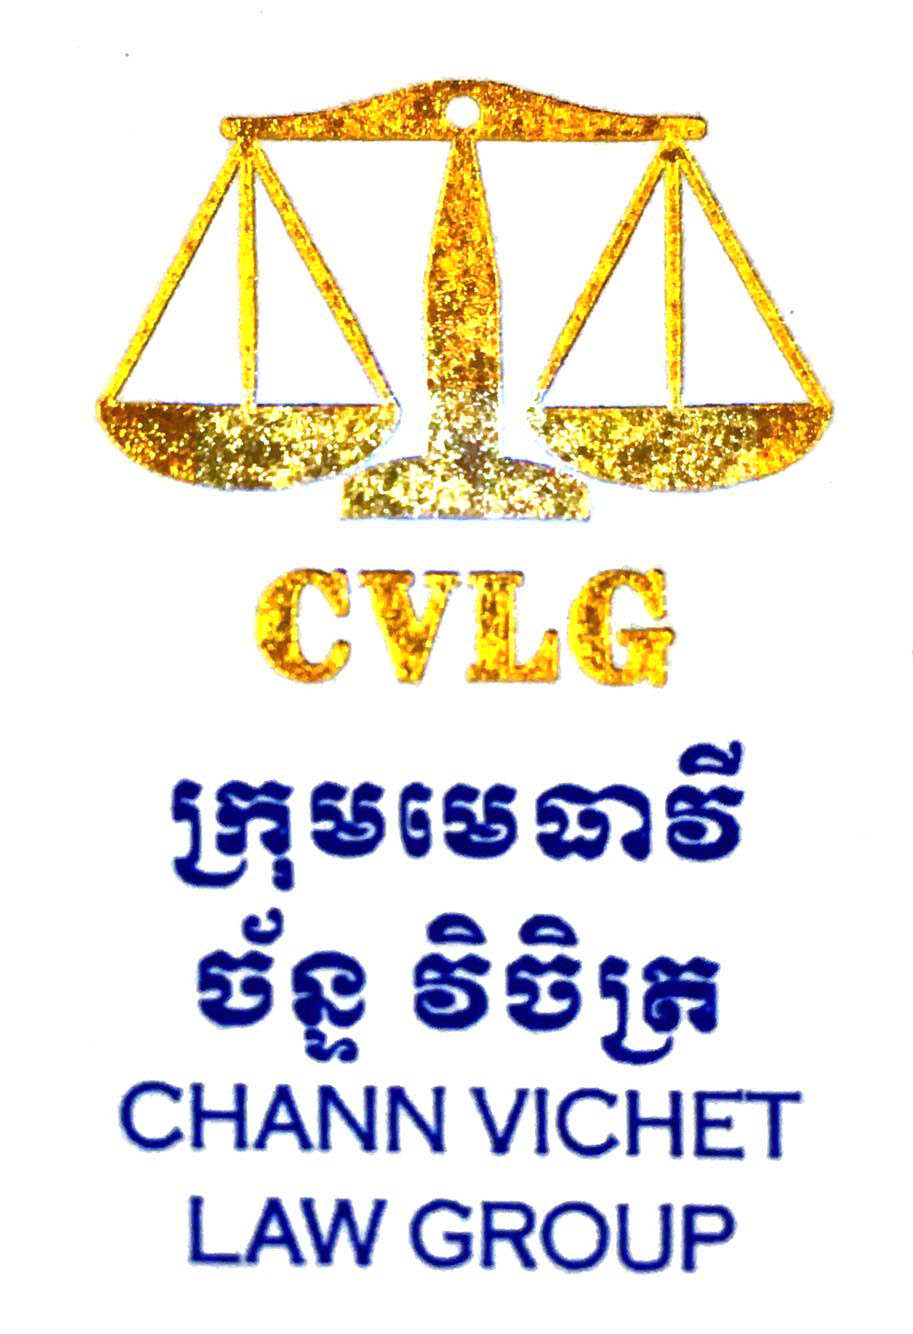 Chann Vichet Law Group